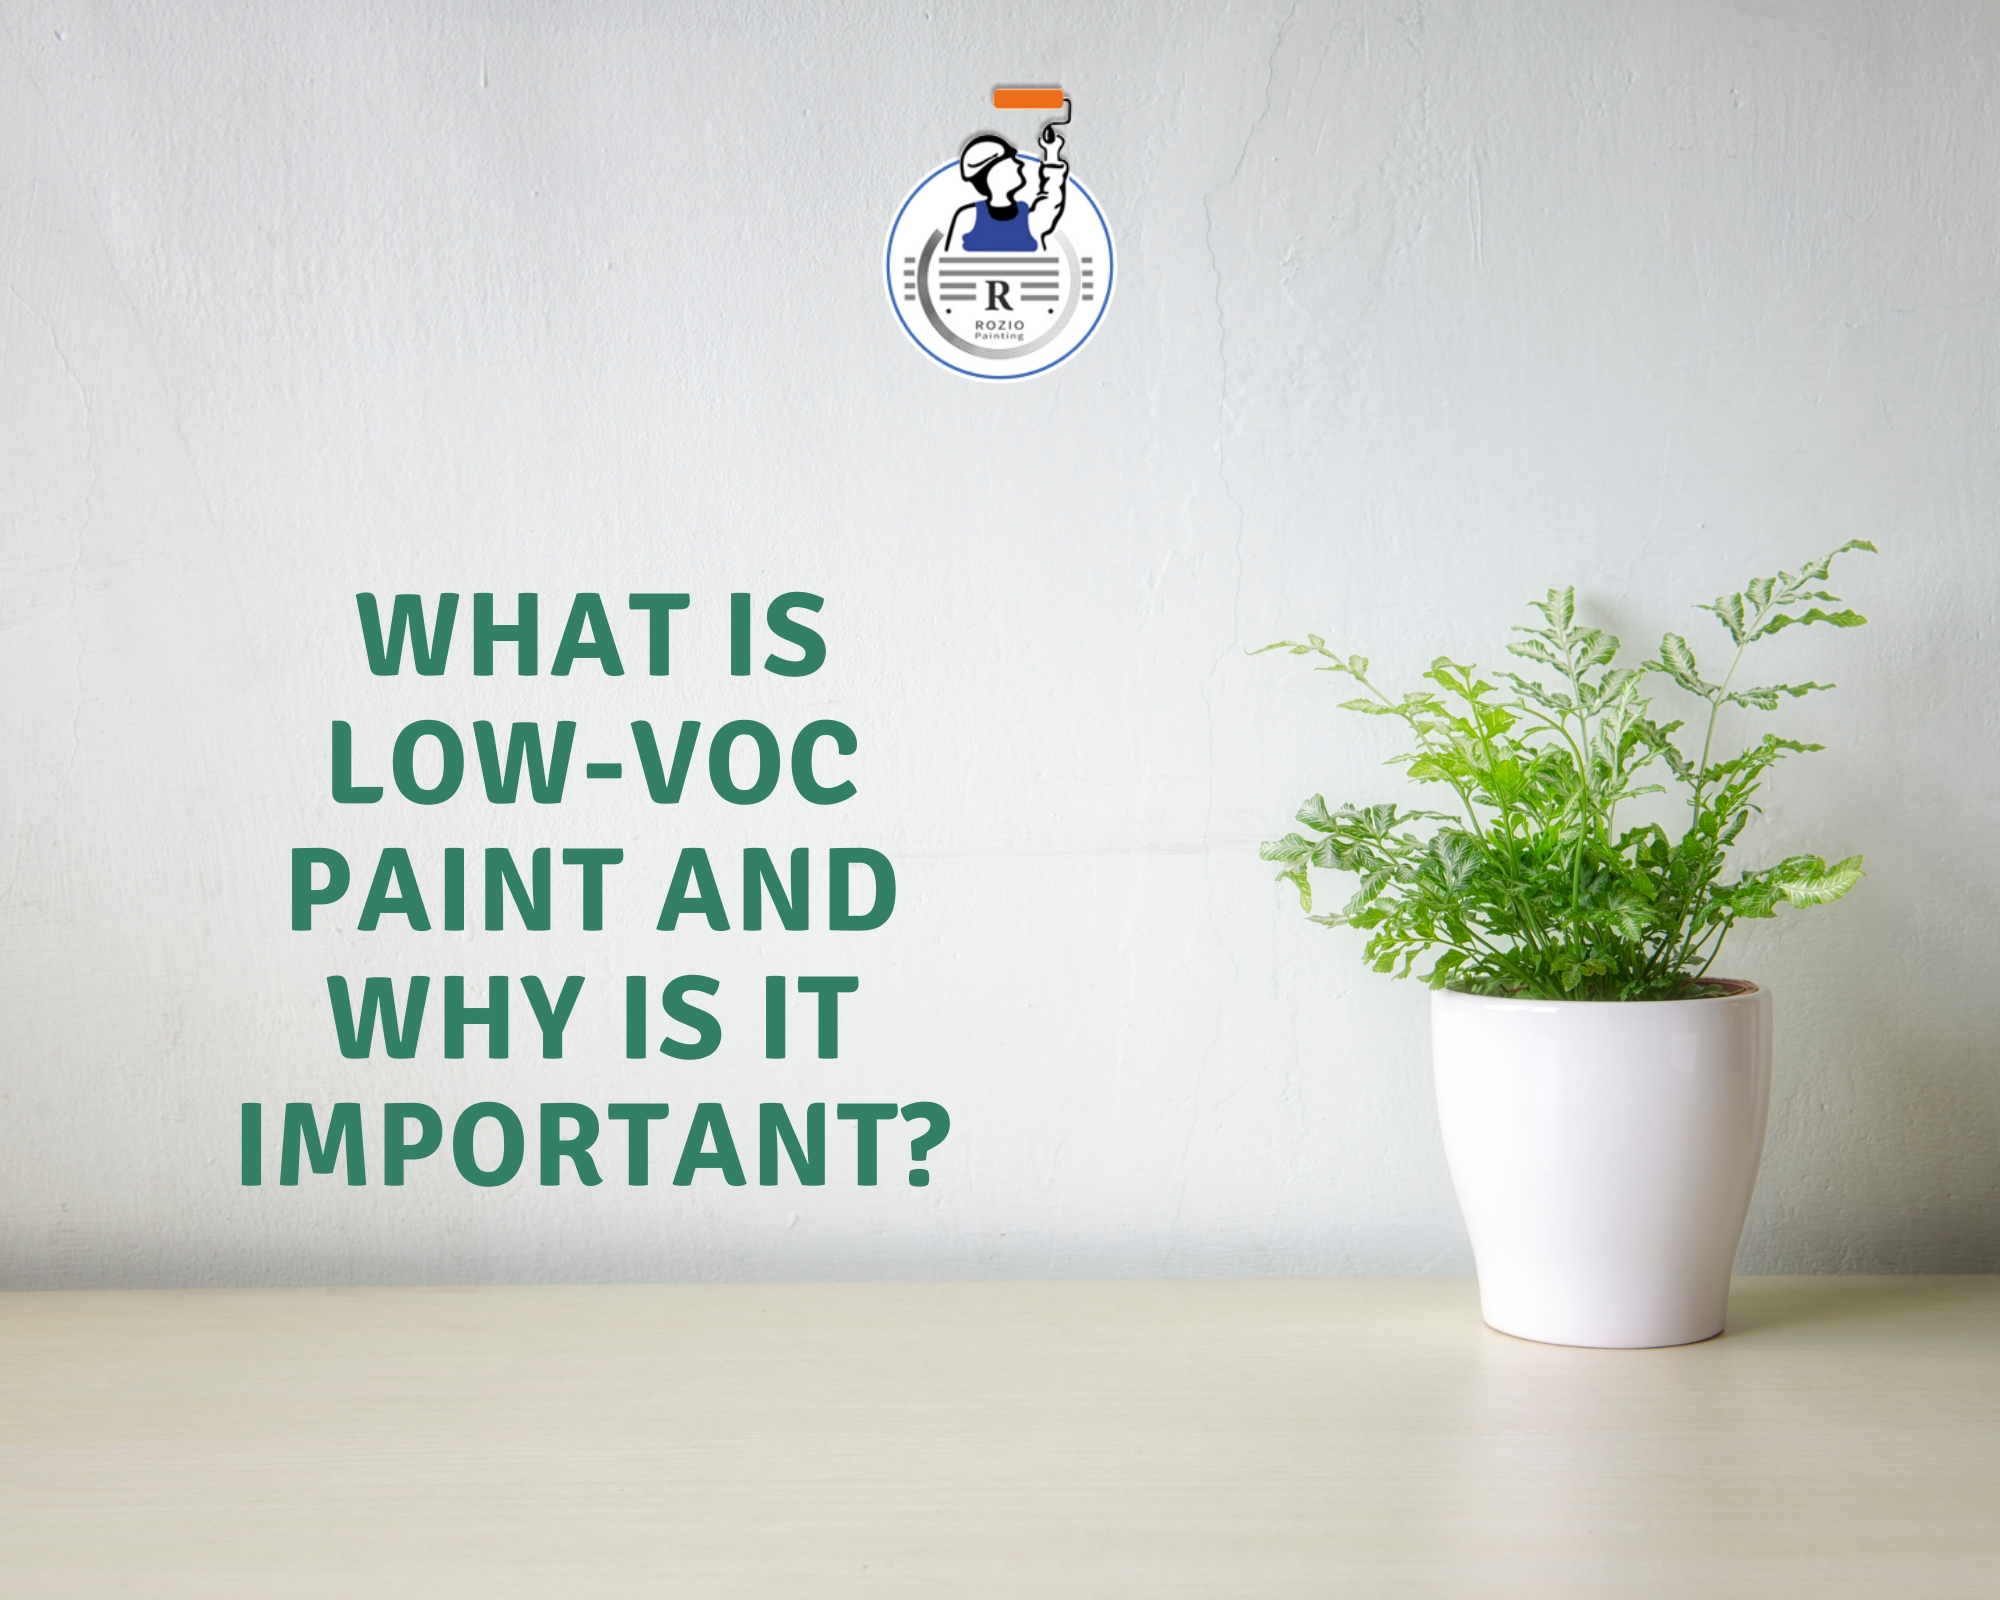 What is low-VOC paint and why is it important?